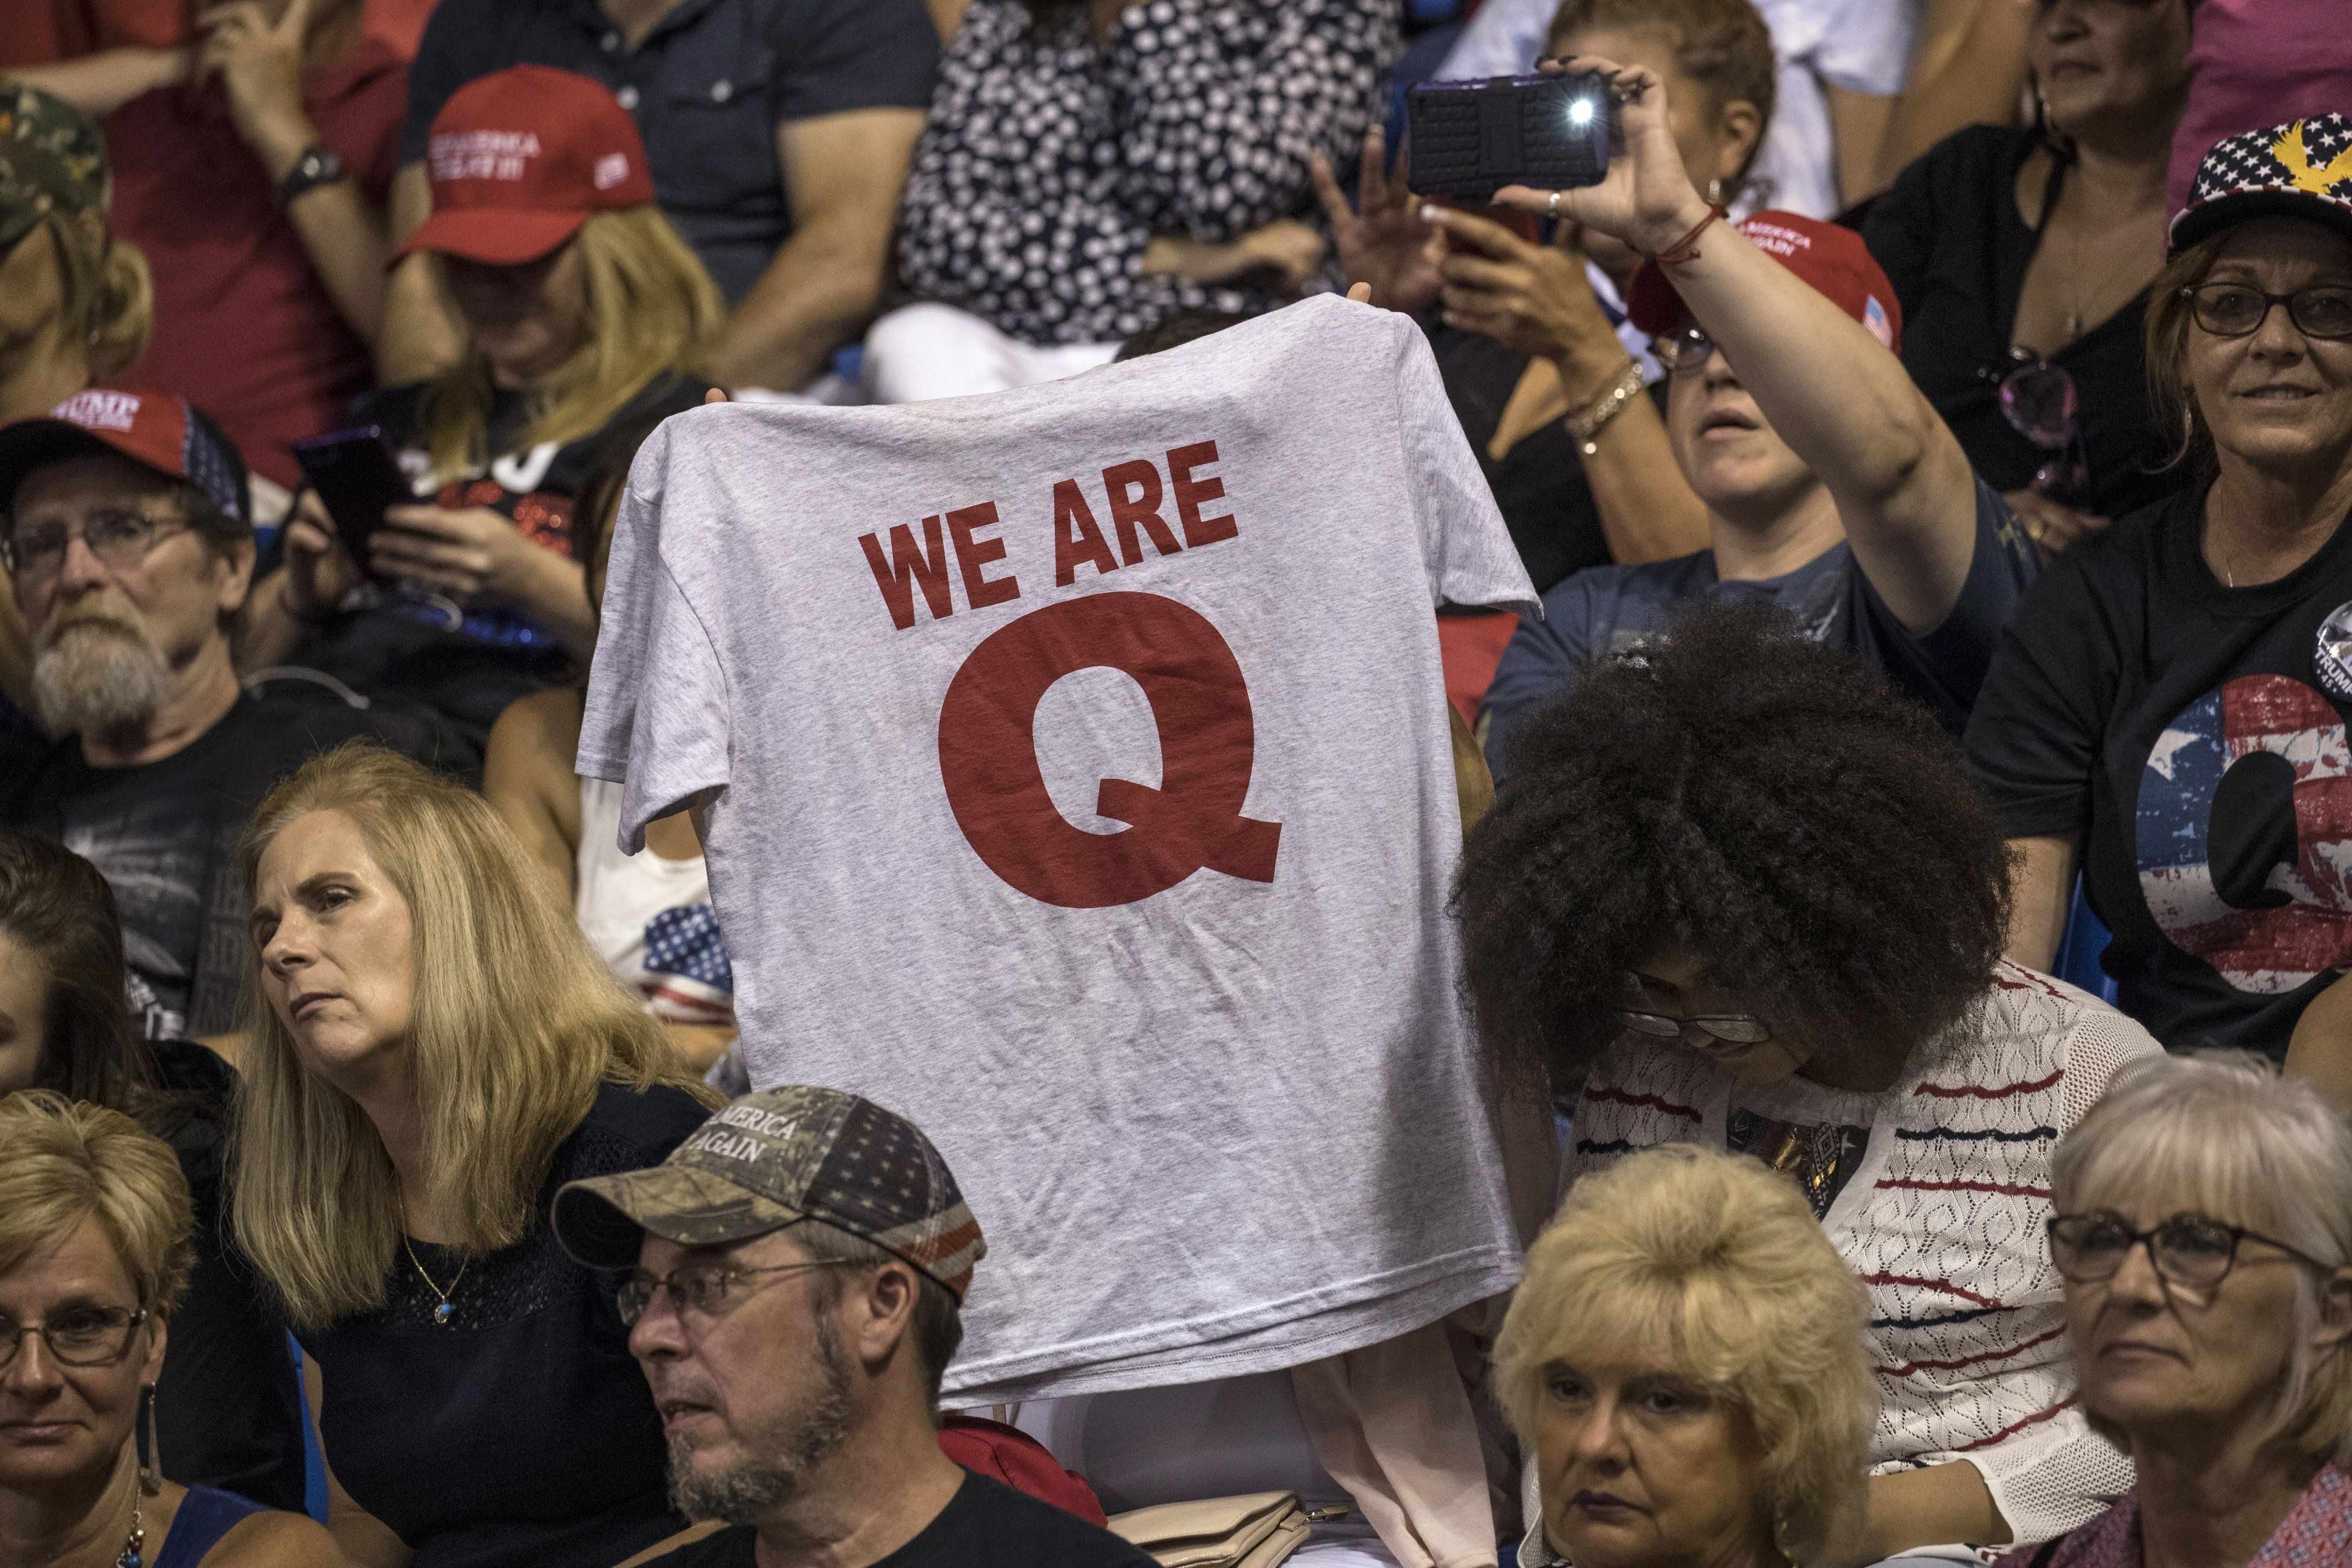 An attendee raises up a T-shirt with the words 'We Are Q' before the start of a rally with U.S. President Donald Trump in Wilkes-Barre, Pennsylvania, U.S., on Thursday, Aug. 2, 2018. Trump tweeted Thursday that Pennsylvania has to love him because he's 'bringing STEEL BACK in a VERY BIG way.' Photographer: Victor J. Blue/Bloomberg via Getty Images